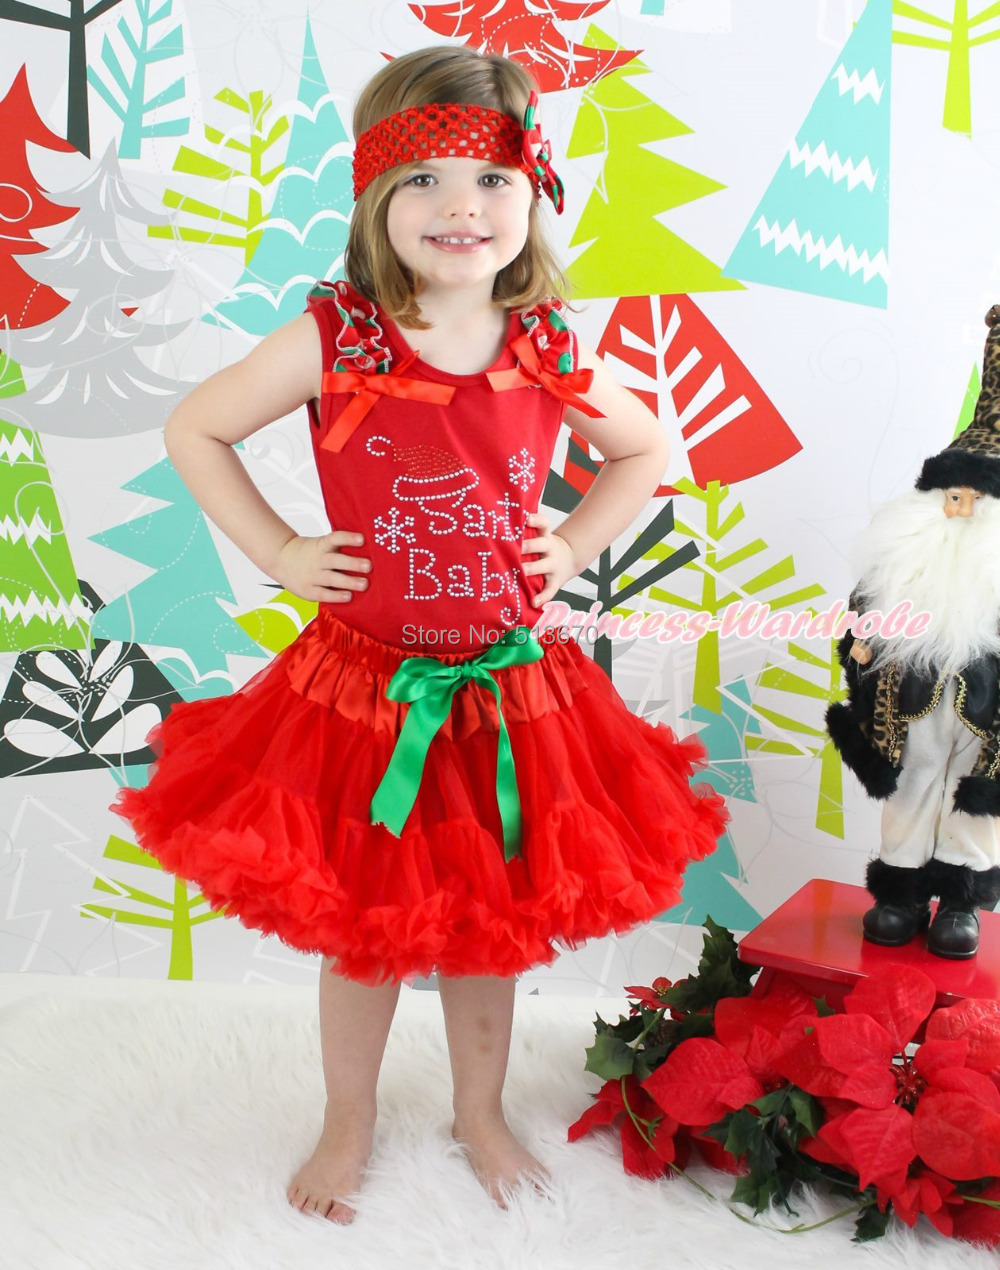 XMAS Rhinestone Santa Baby Red Top Red Pettiskirt Baby Girl Outfit Set 1-8Year MAPSA0073 цена и фото